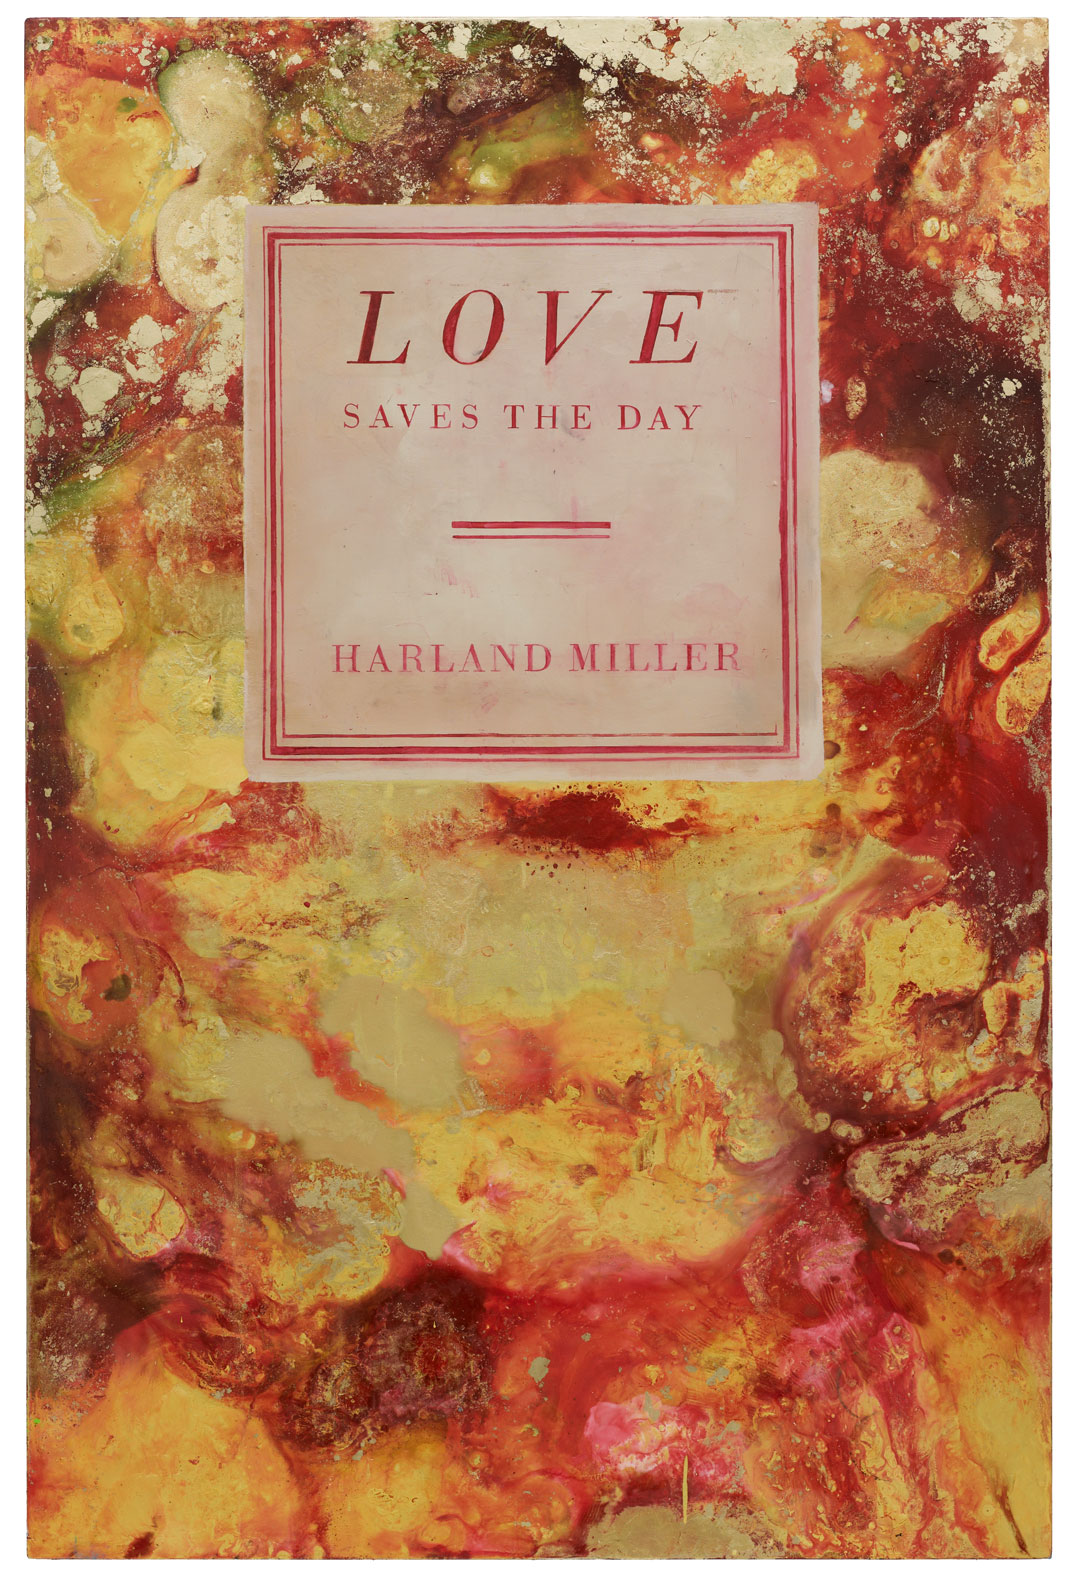 Love Saves the Day (2012) by Harland Miller, from the artist's Poets series. As reproduced in Harland Miller: In Shadows I Boogie